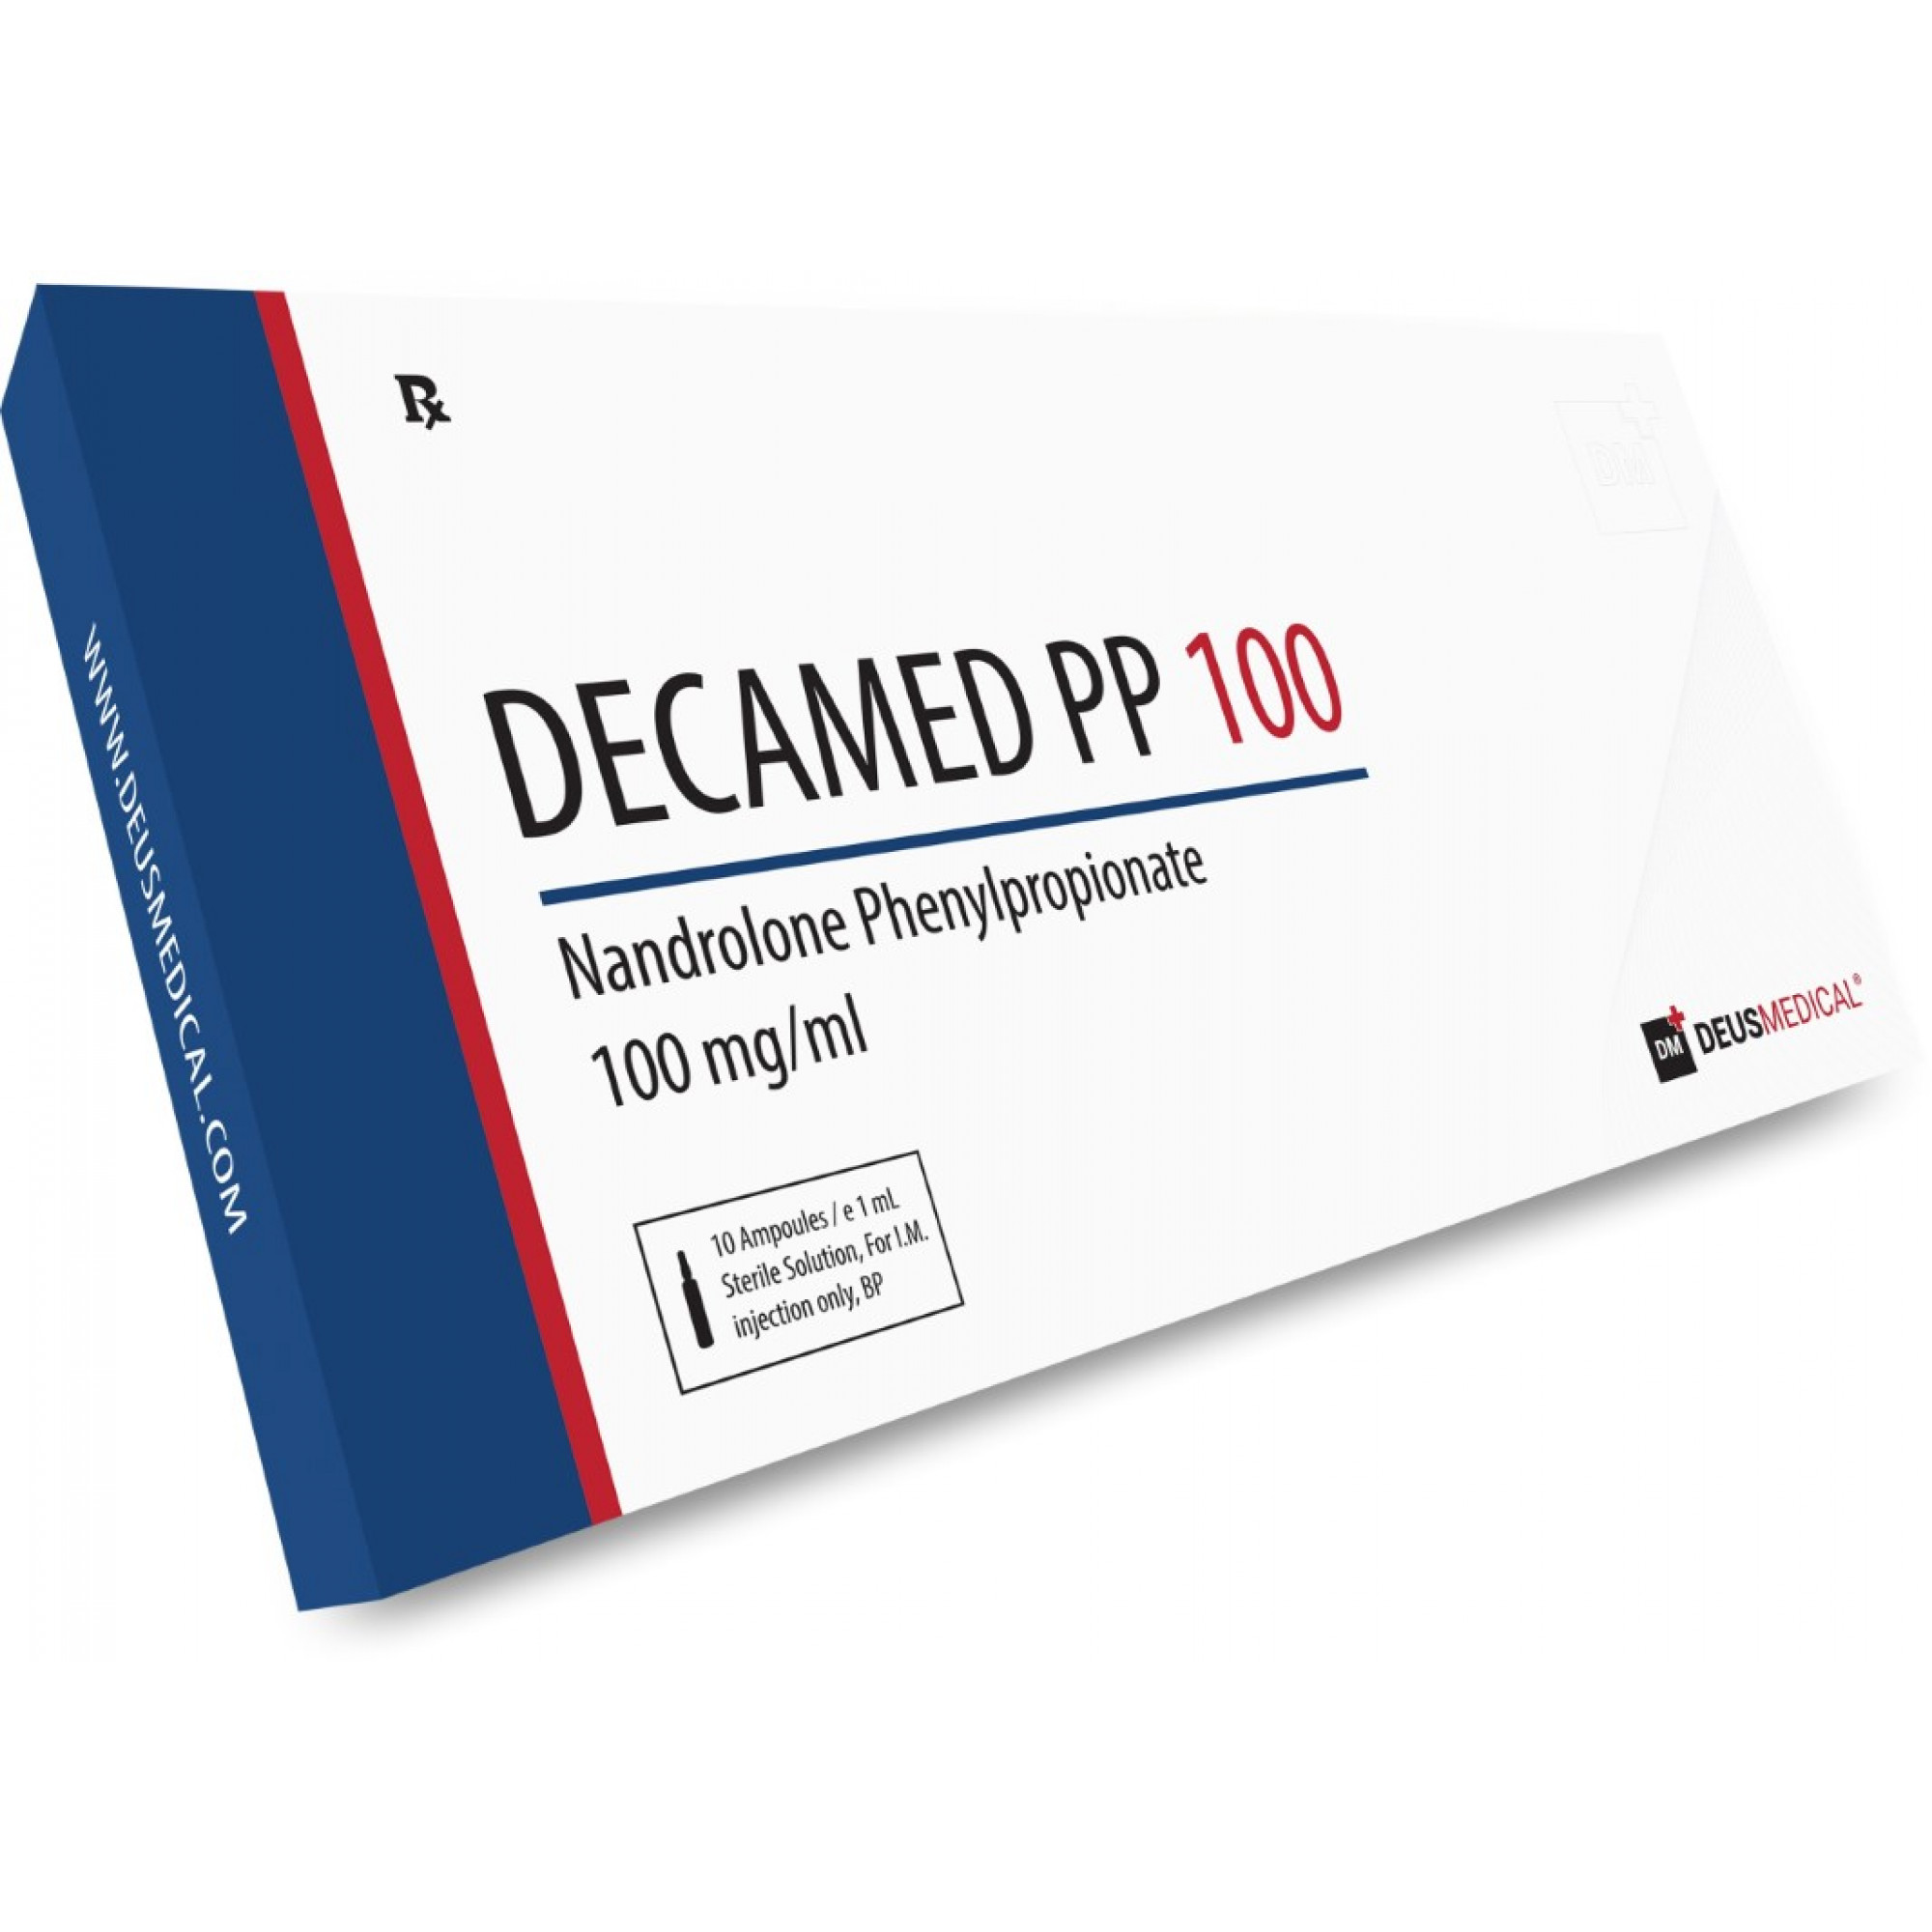 DECAMED PP 100 (Nandrolone Phenylpropionate), DEUS MEDICAL, BUY STEROIDS ONLINE - www.DEUSPOWER.com